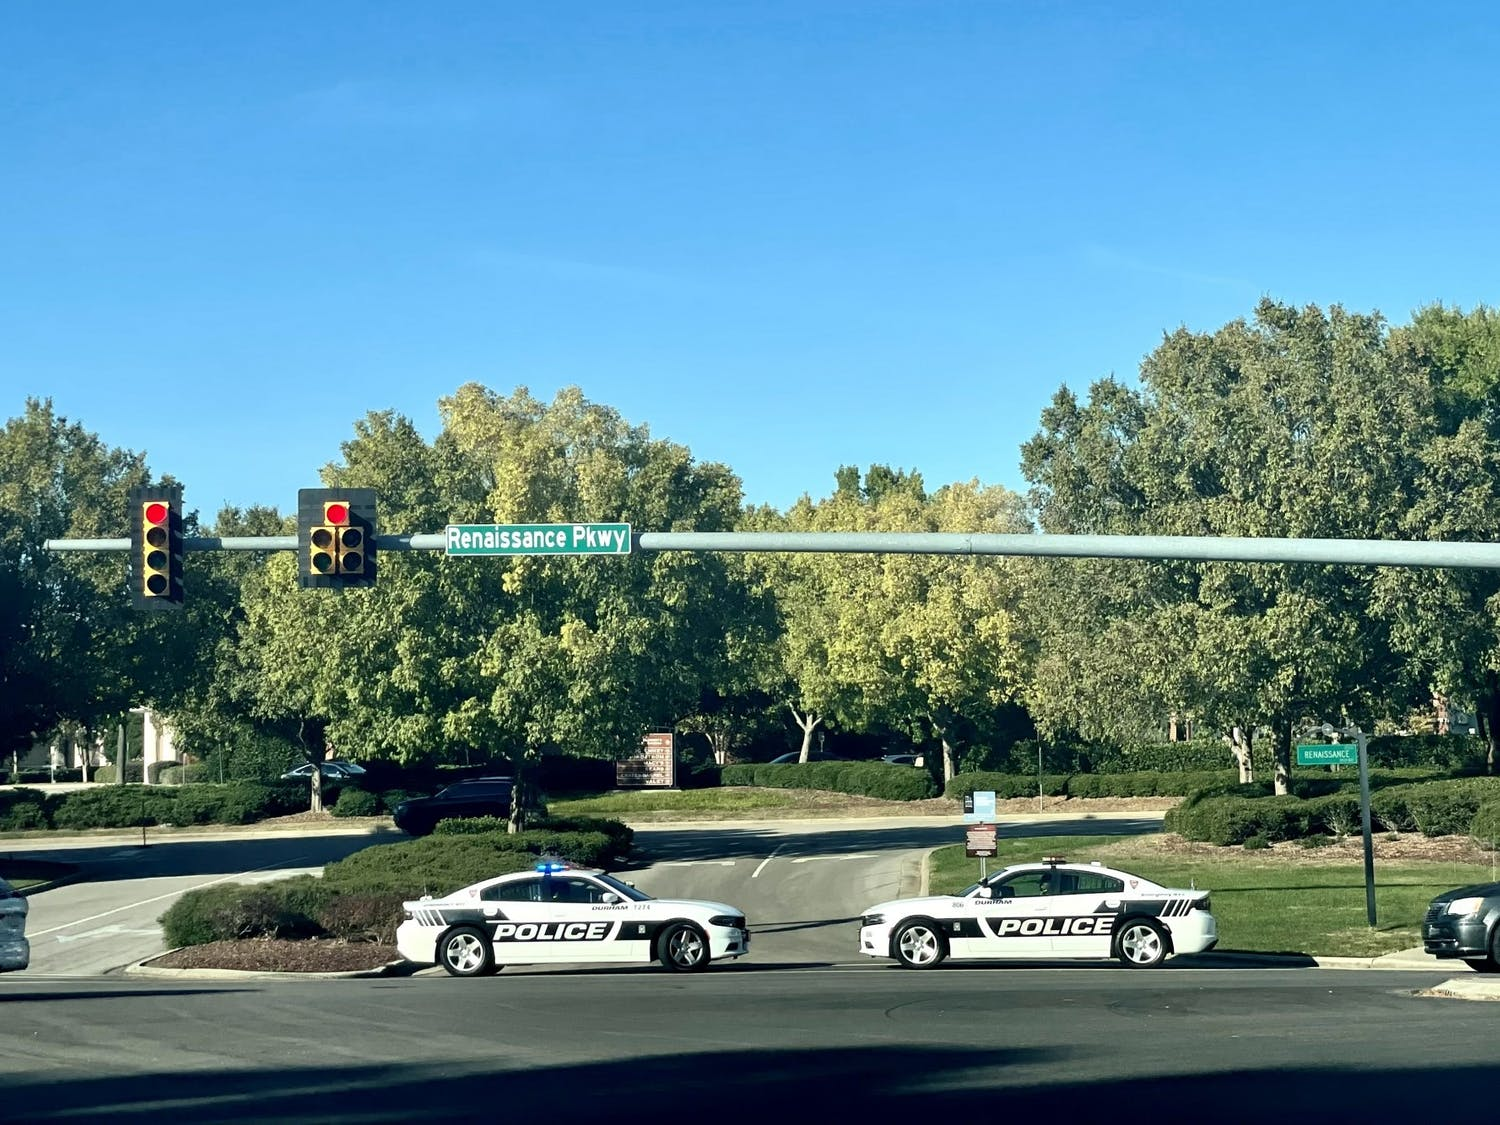 Police cars line Renaissance Parkway, one of the entrance streets of Southpoint Mall in Durham, on Oct. 24 after hearing reports of an incident involving a firearm.